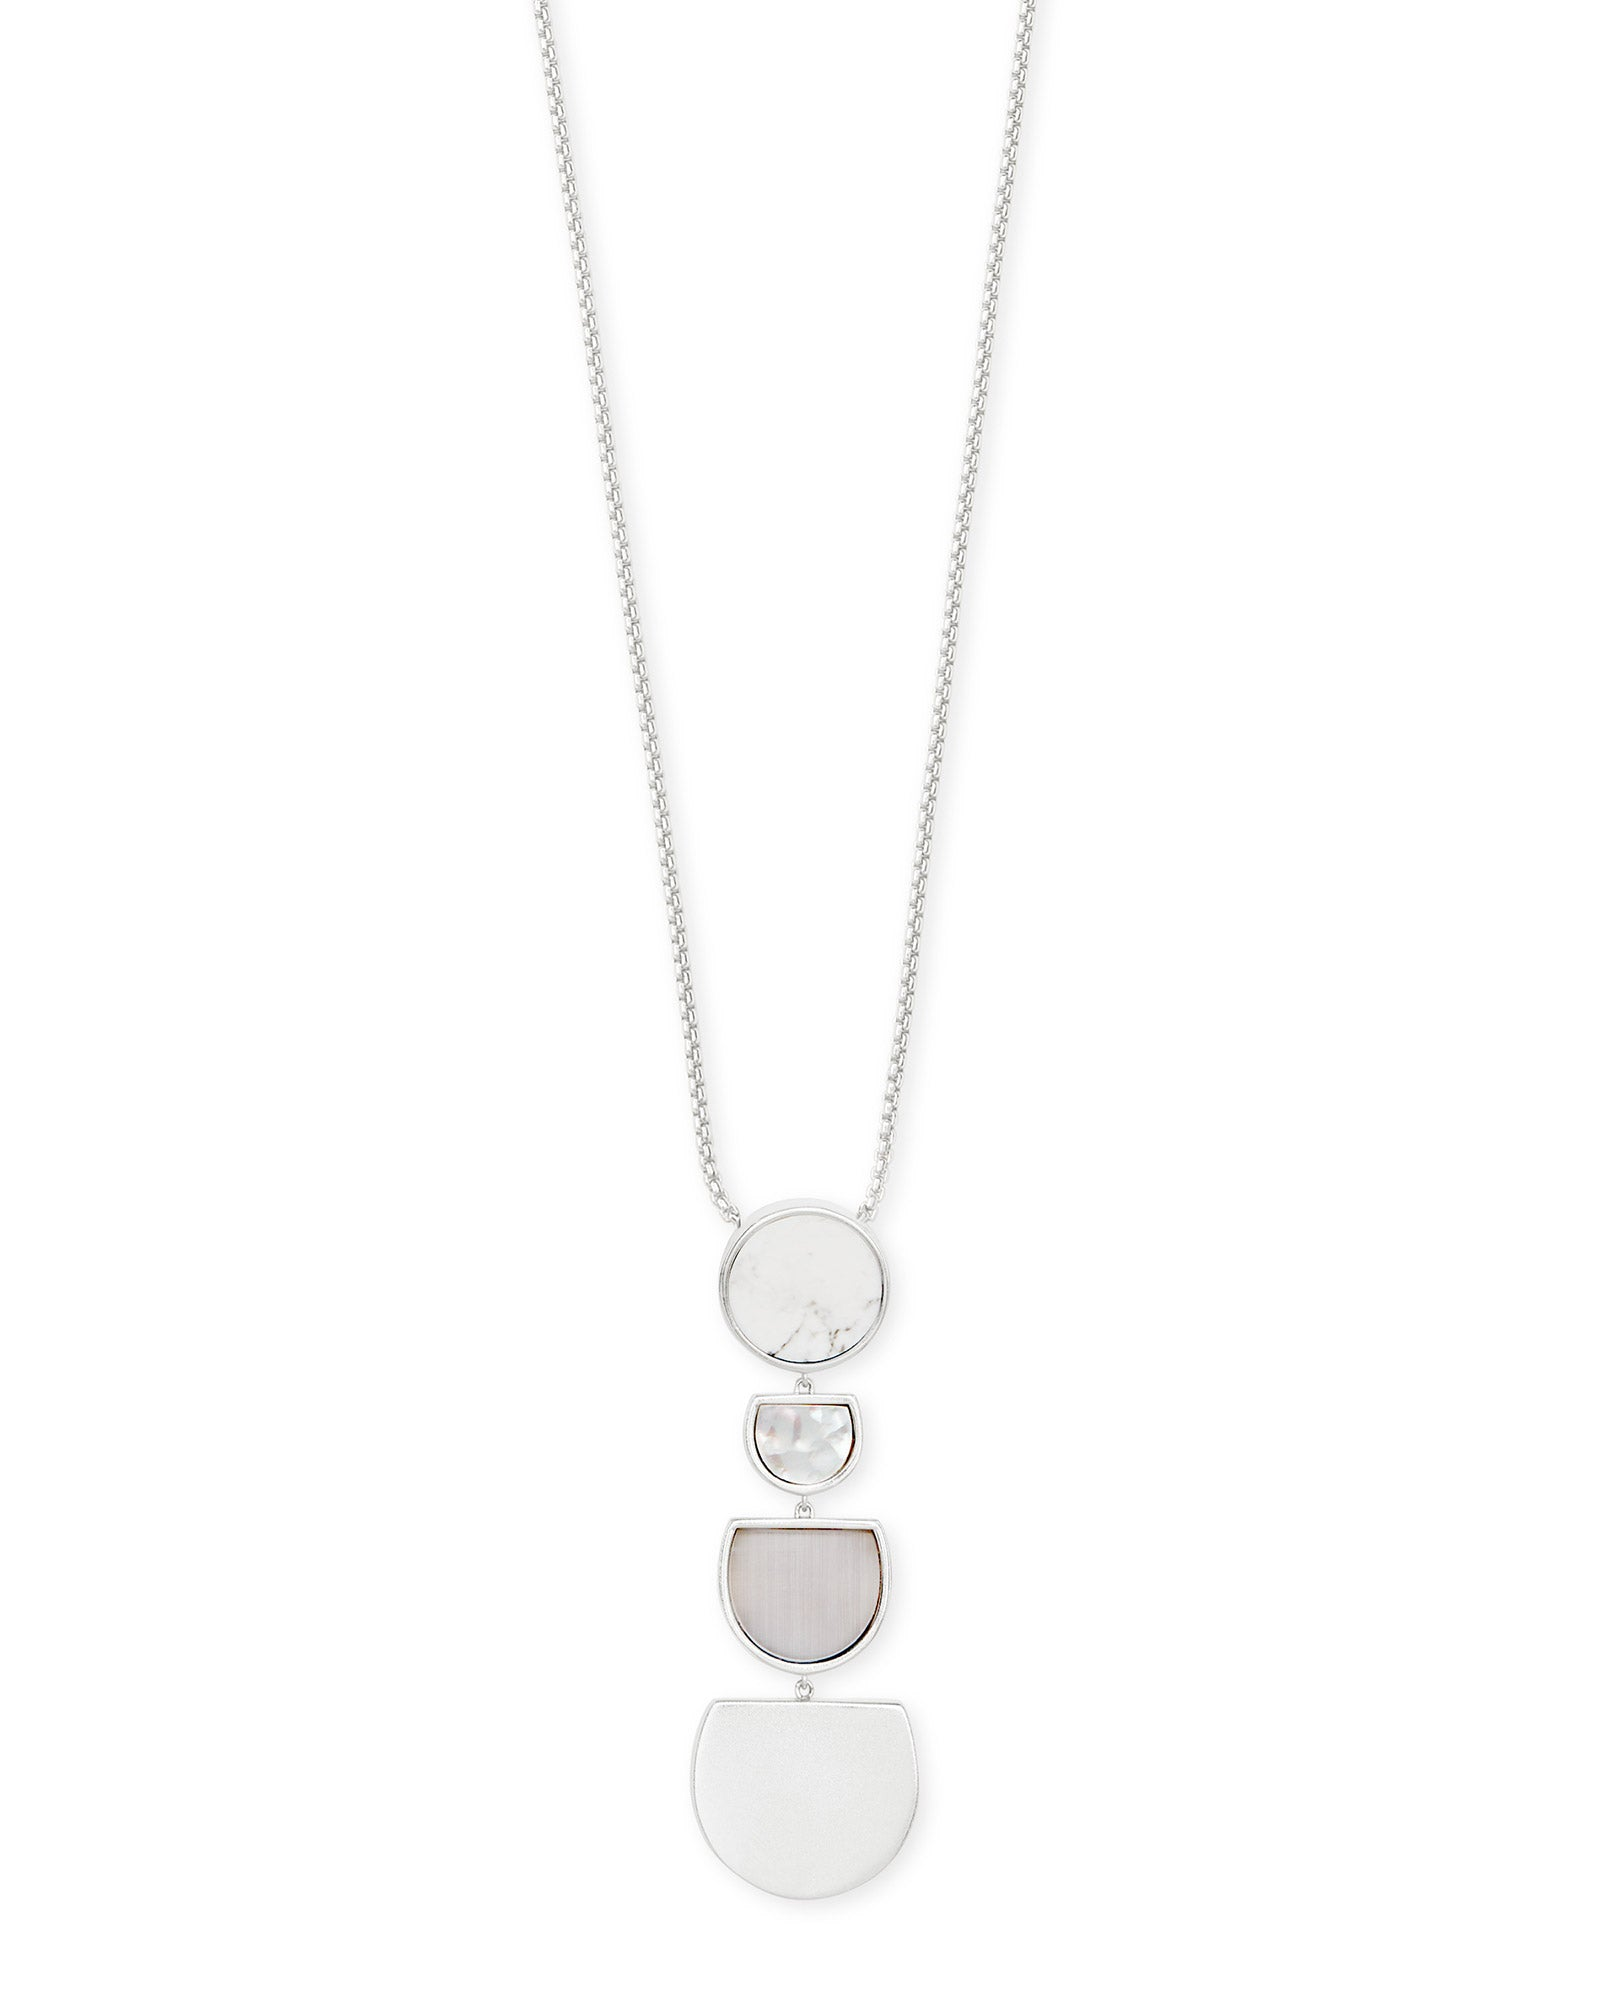 Kendra Scott Luna Silver Long Pendant Necklace In White Mix